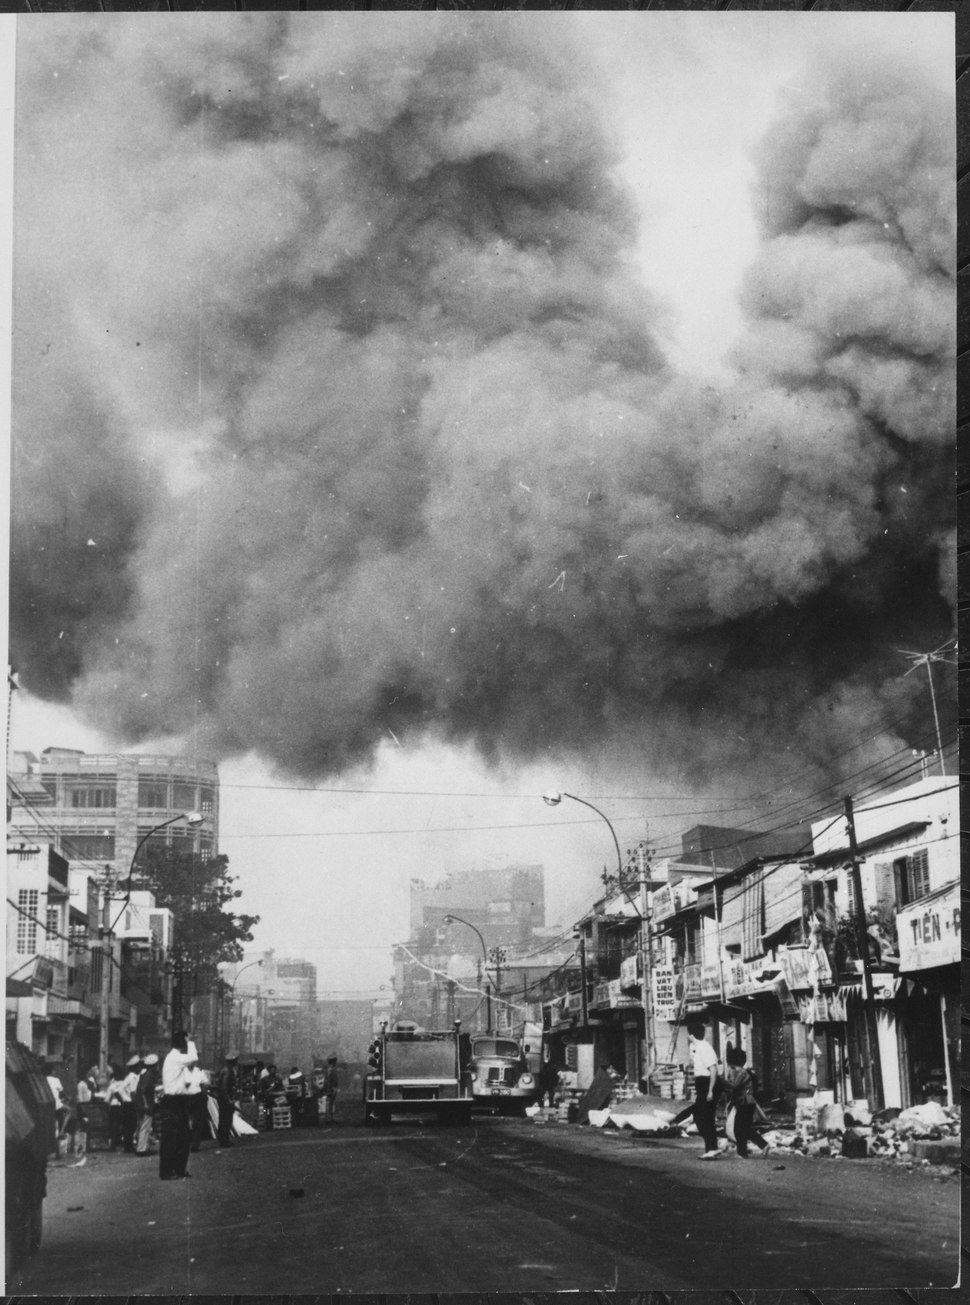 Black smoke covers areas of the capital city and fire trucks rush to the scenes of fires set during attacks by the Viet - NARA - 541874